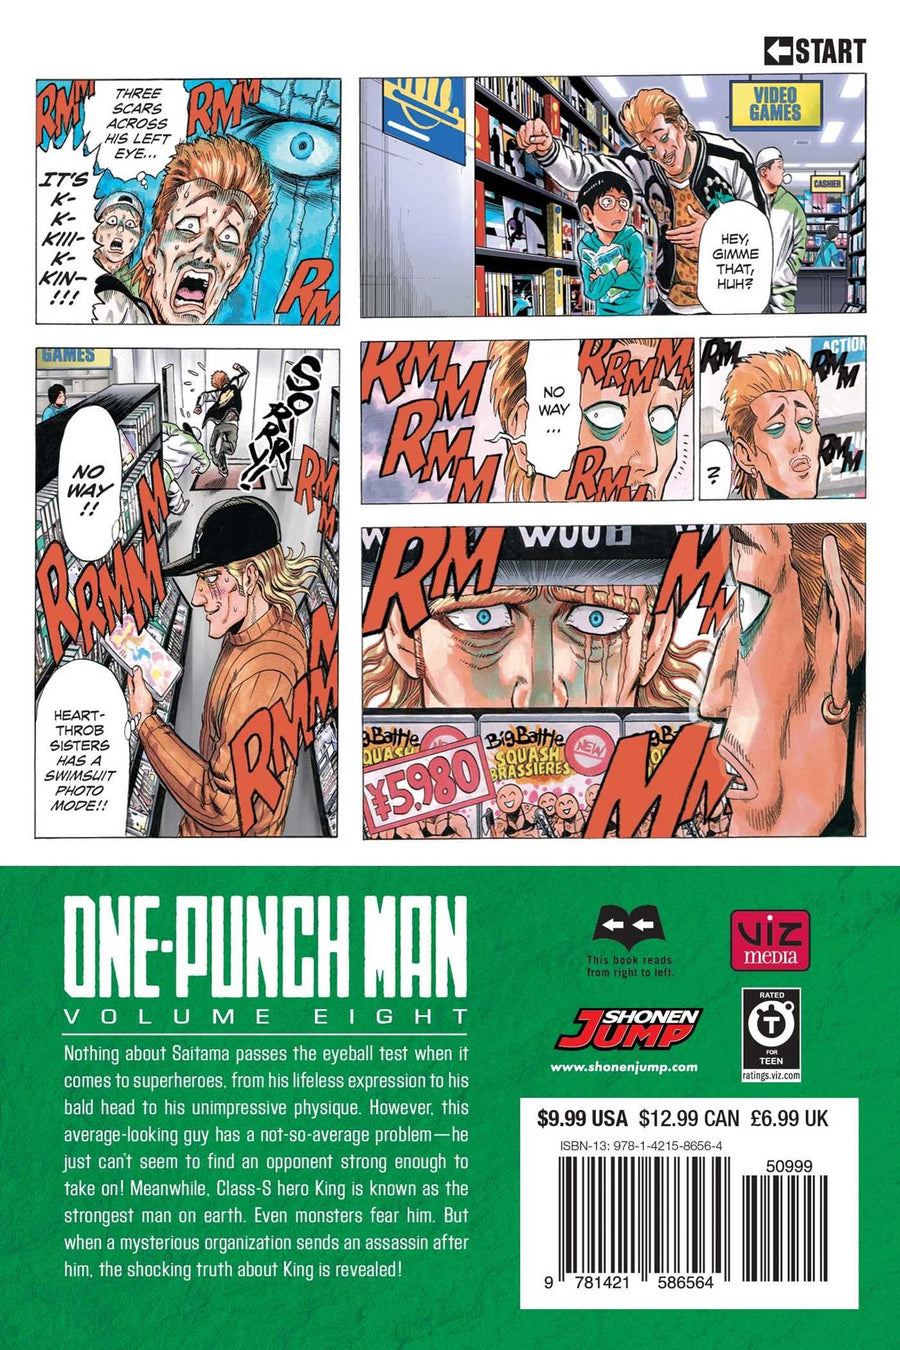 One Punch Man Volume 8